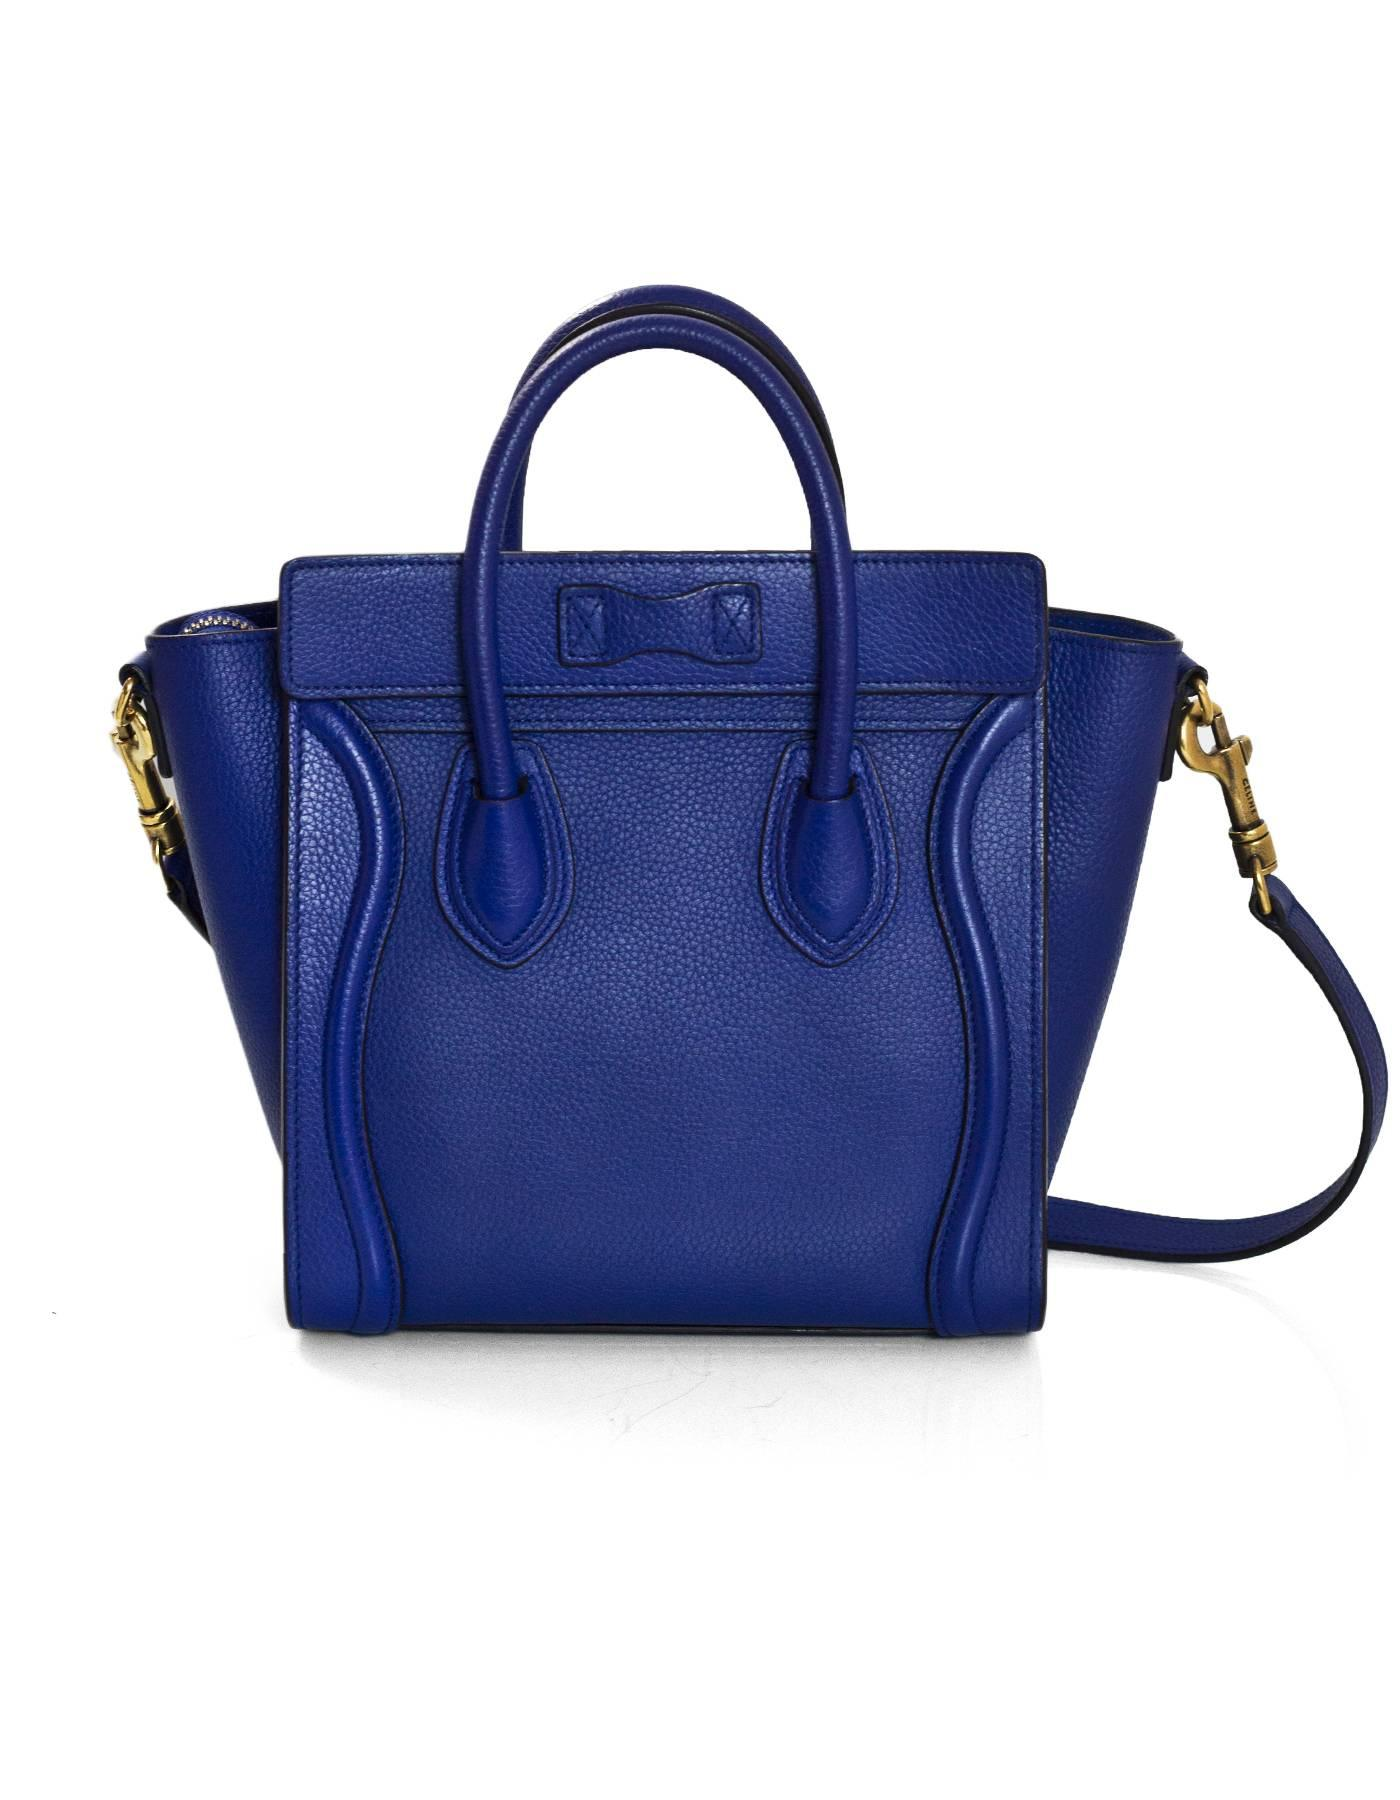 77f1bd5b2e Celine Cobalt Blue Drummed Calfskin Nano Luggage Tote Crossbody Bag with DB  For Sale at 1stdibs